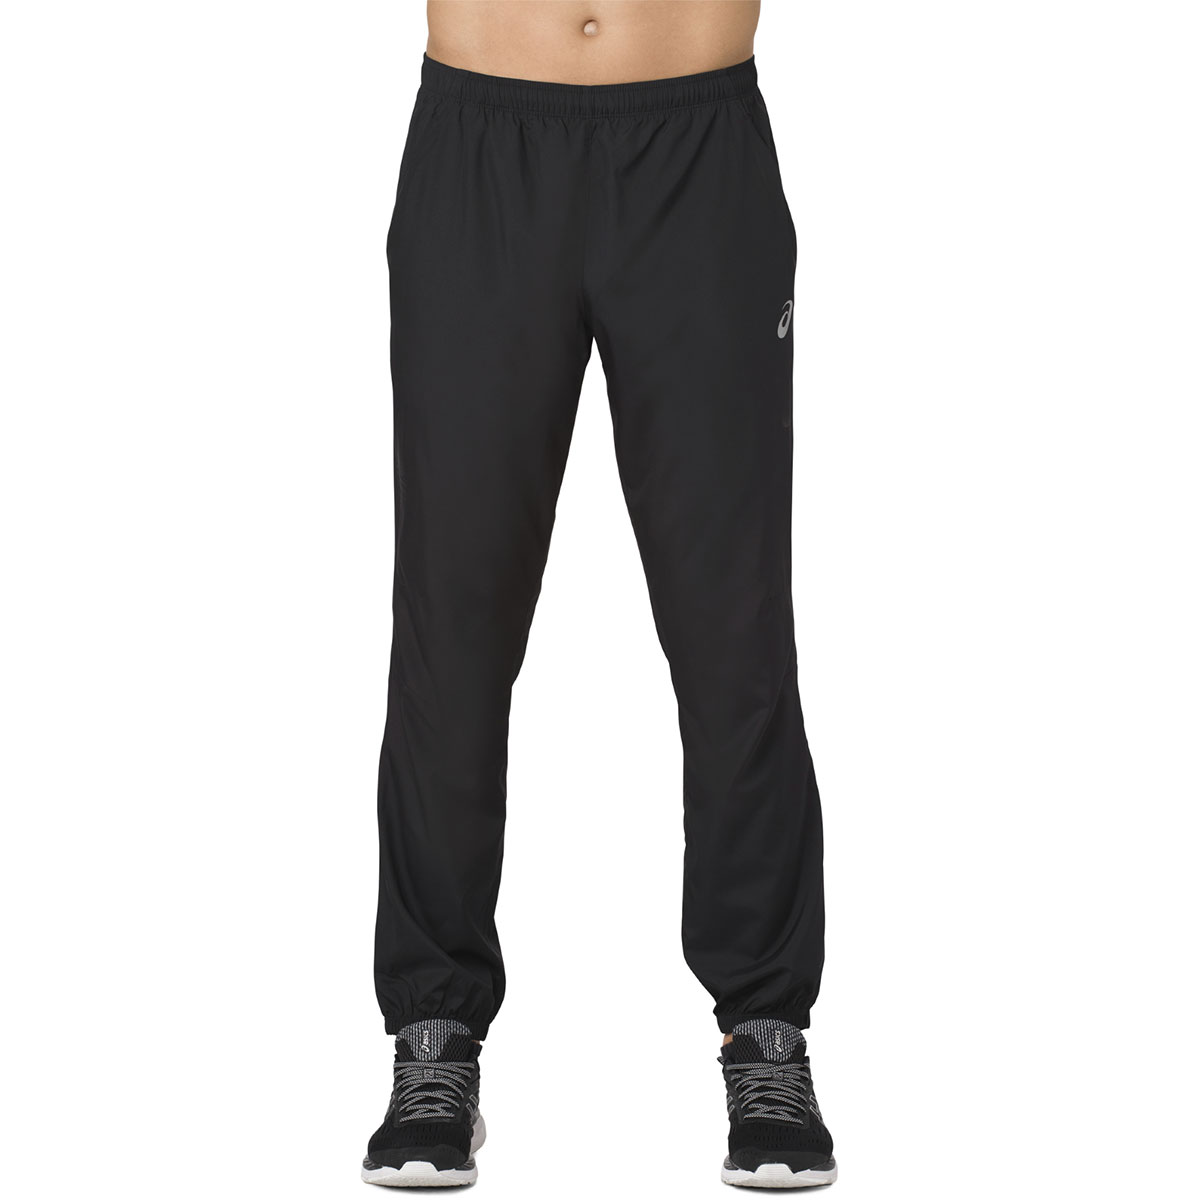 b4936b01ad ASICS Silver Woven Pant - Running trousers for Men - Black | 21RUN